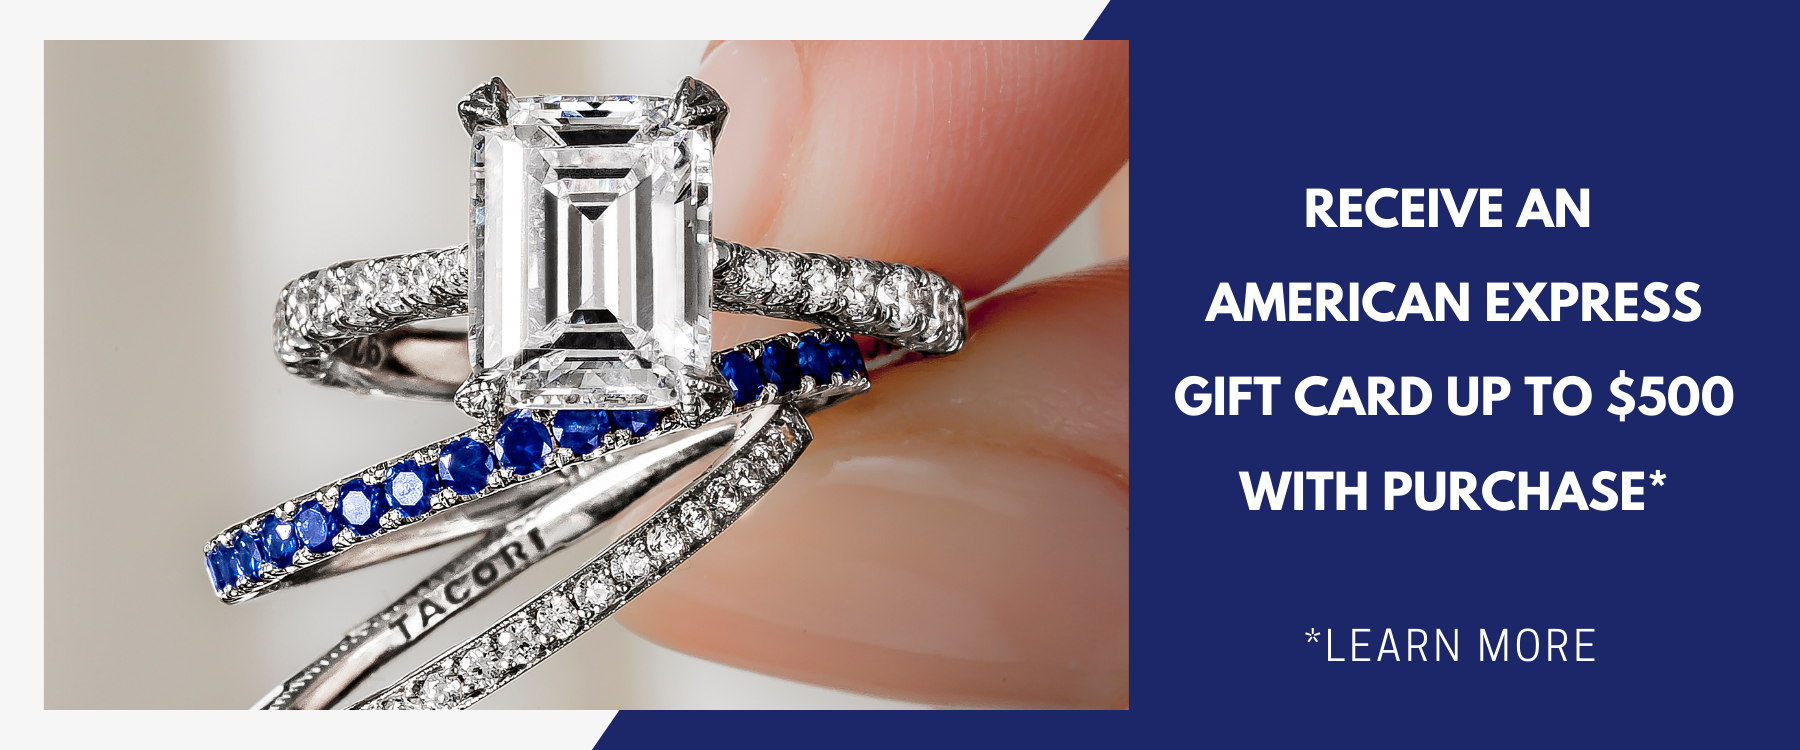 Receive an American express gift card up to $500 with diamond engagement ring purchase at Peter & Co. Jewelers Avon Lake, OH